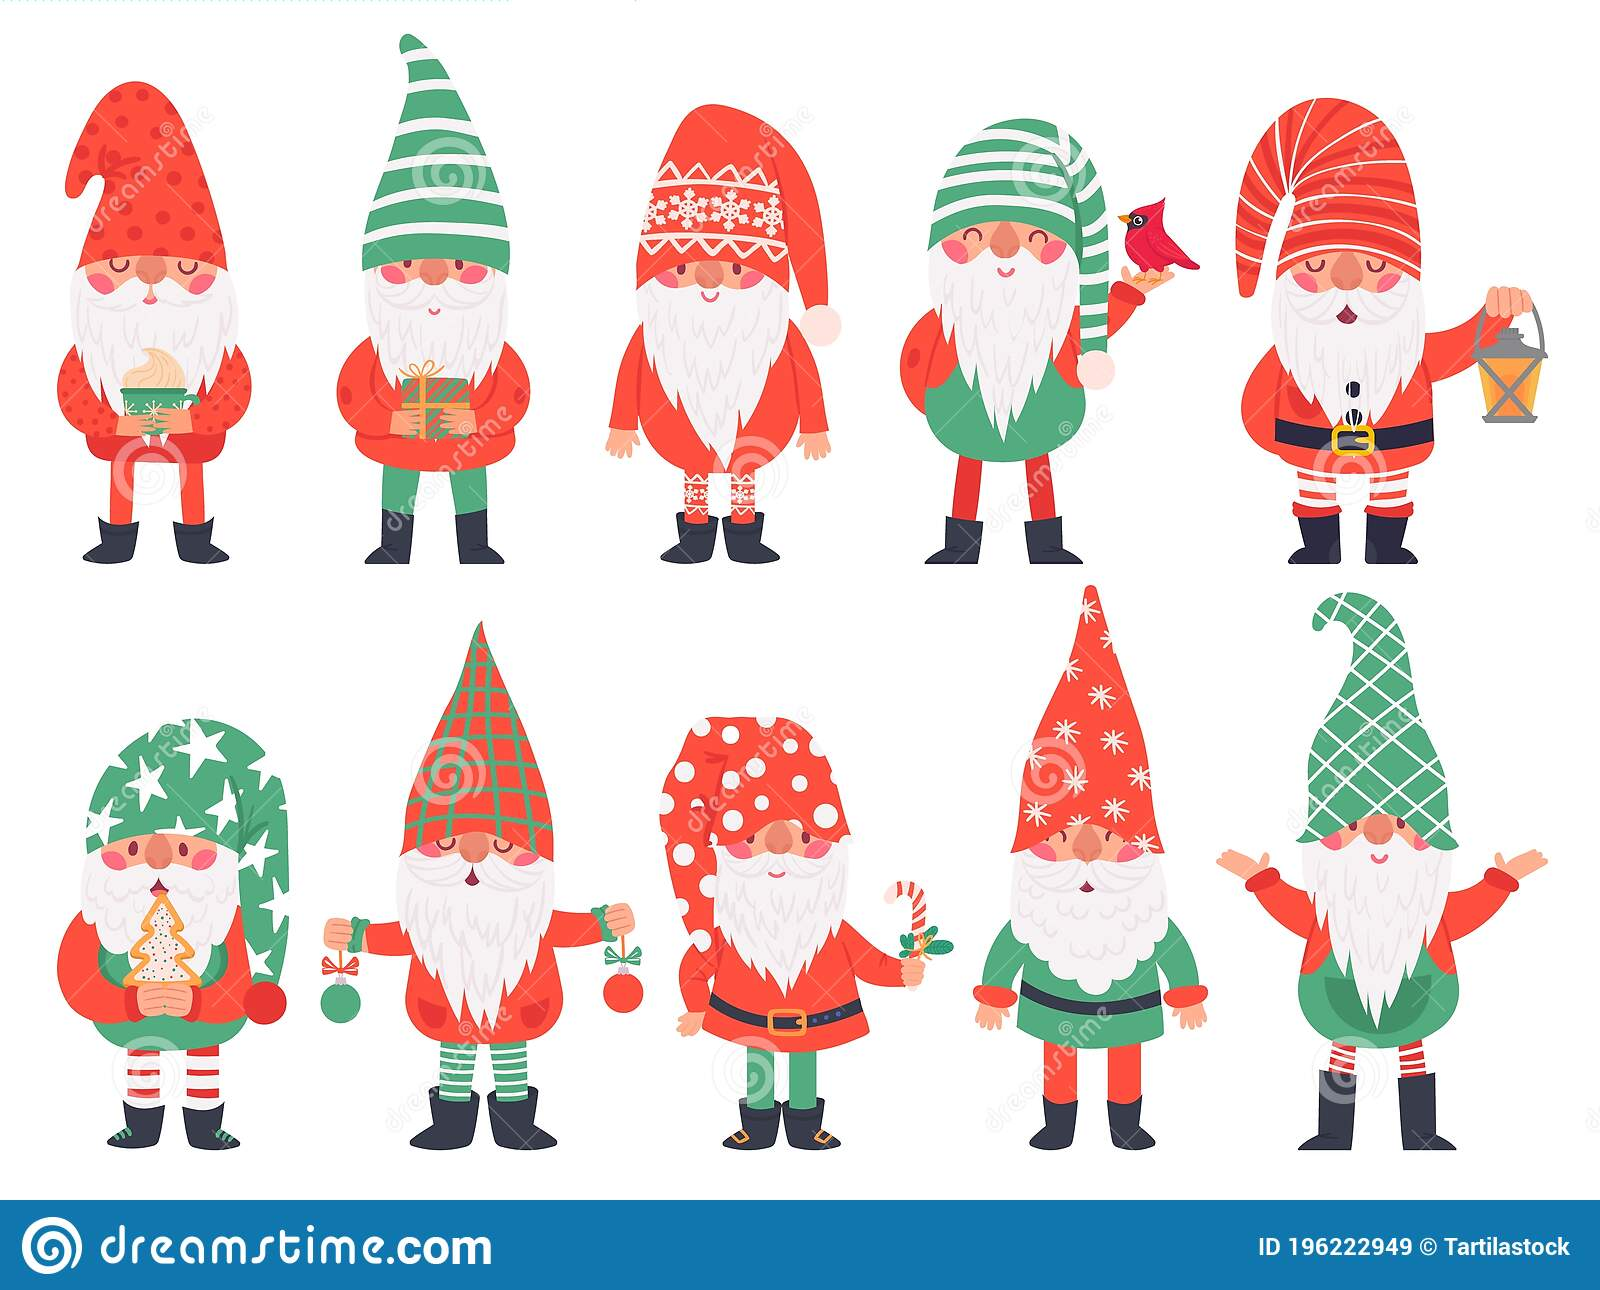 Christmas Dwarfs Funny Fabulous Gnomes In Red Costumes Xmas Gnome With Lantern Traditional Decoration Winter Holiday Stock Vector Illustration Of Dwarf Funny 196222949